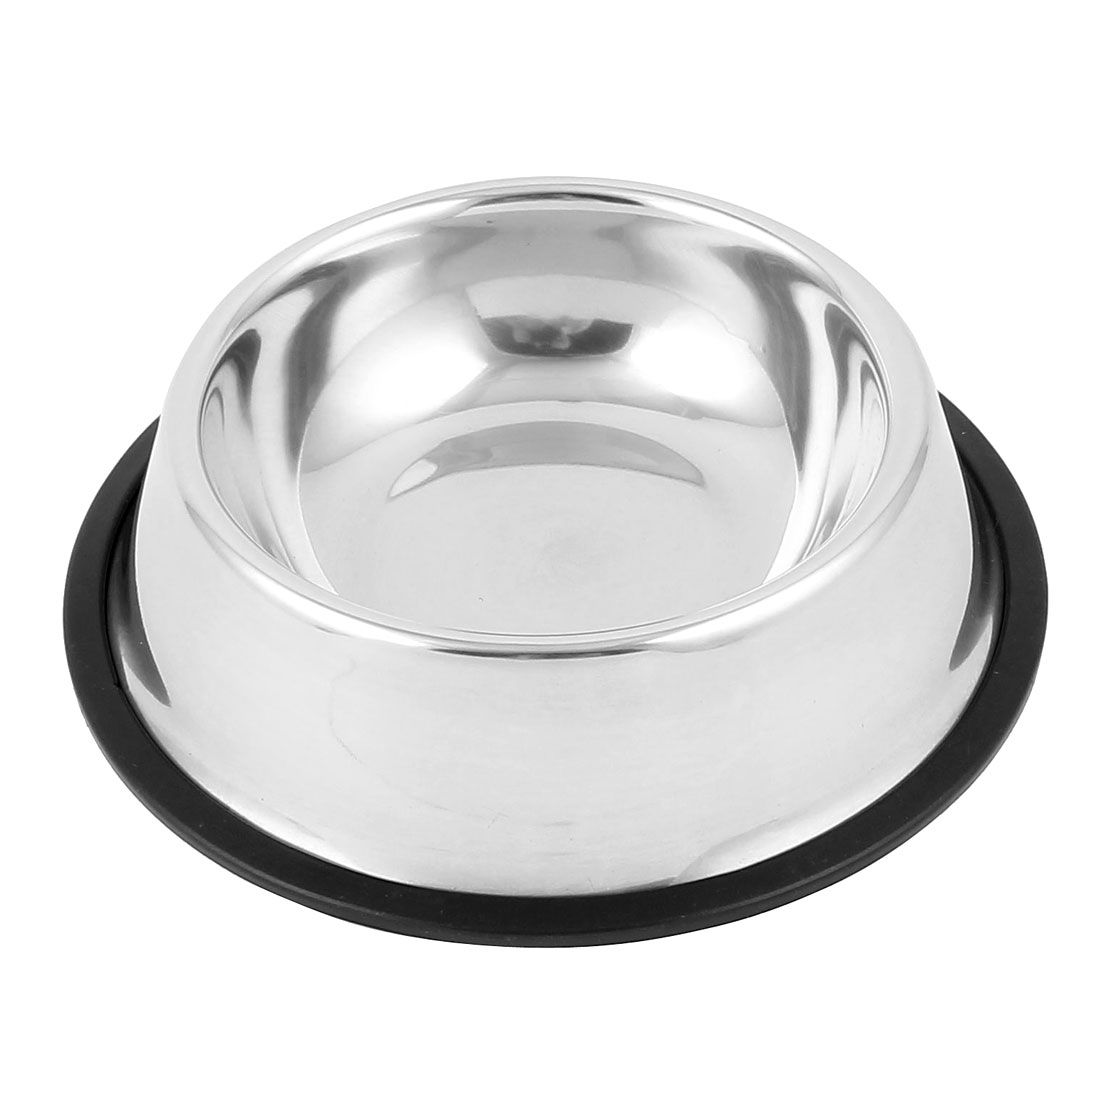 Unique Bargains Iron Food Water Drinking Feeder Bowl Dish for Pet Cat Doggie Silver Tone